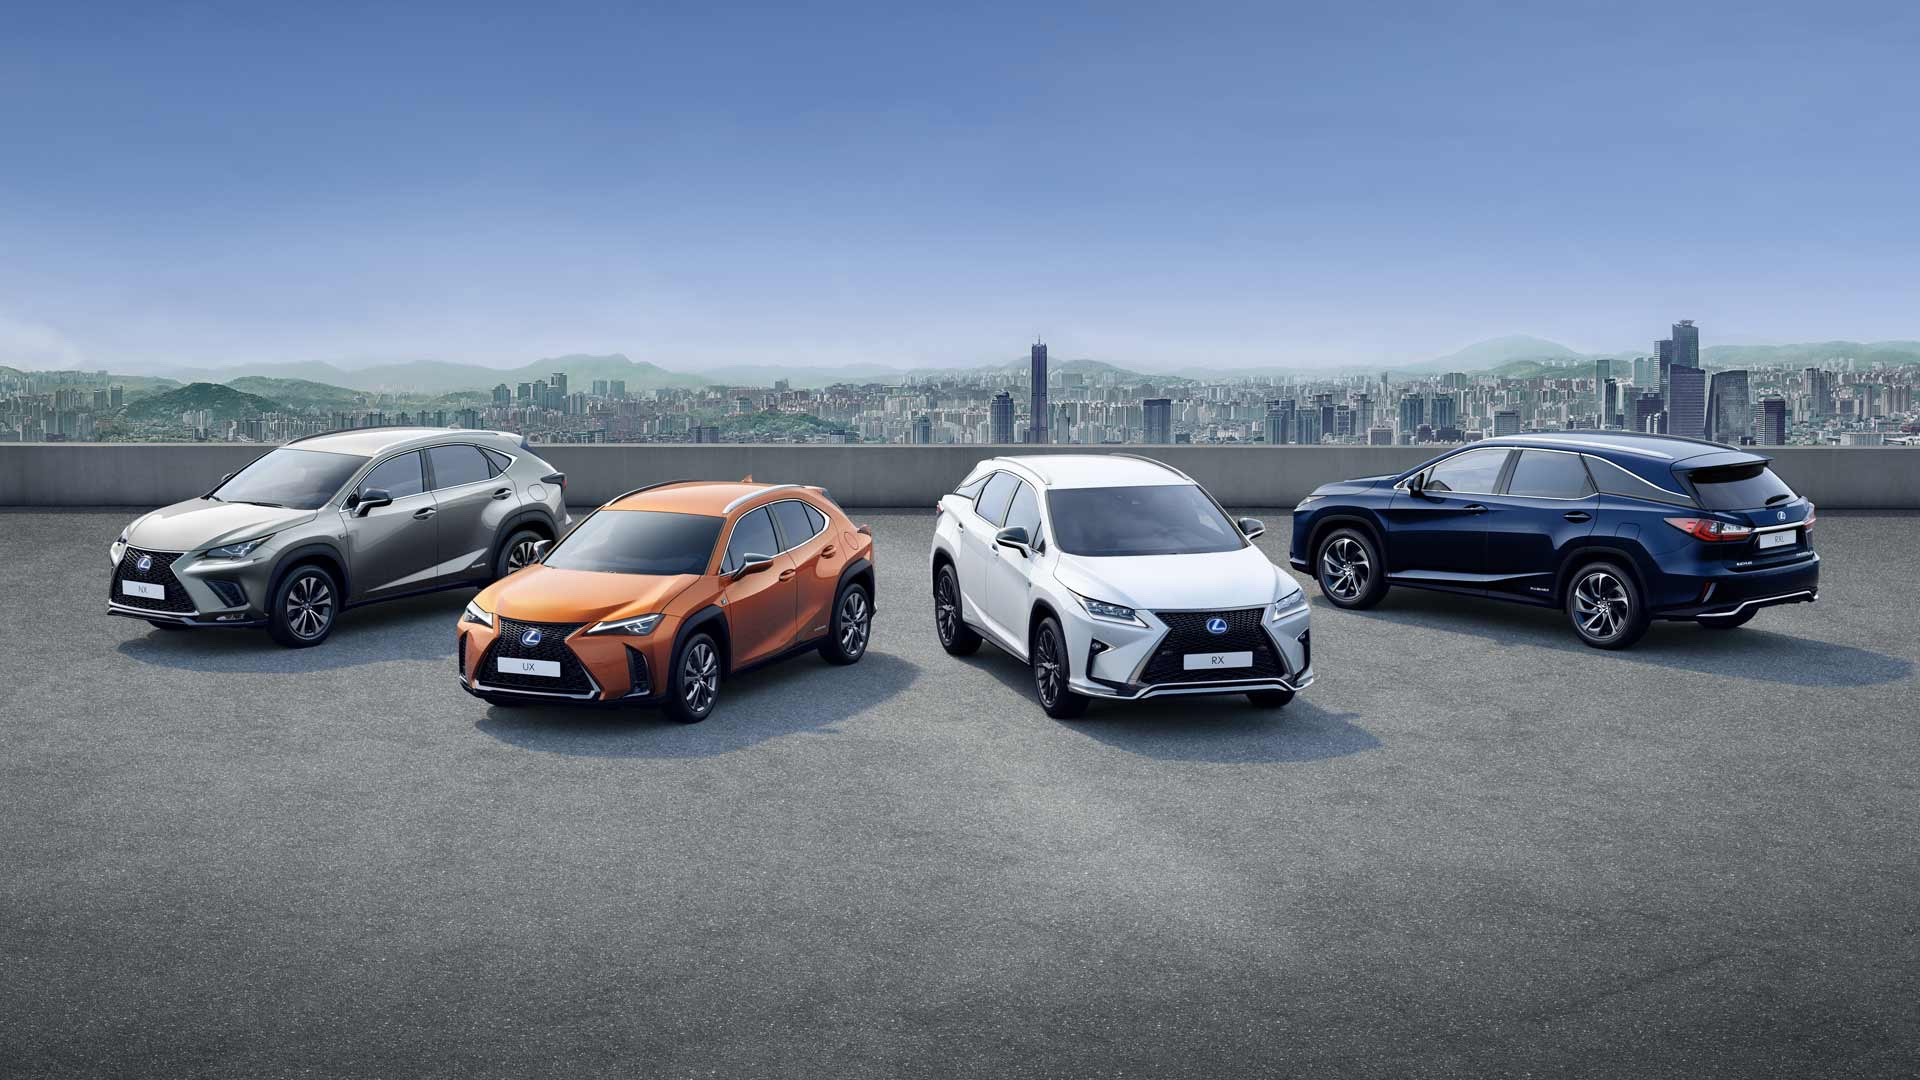 lexus range forum muenchen next step hero